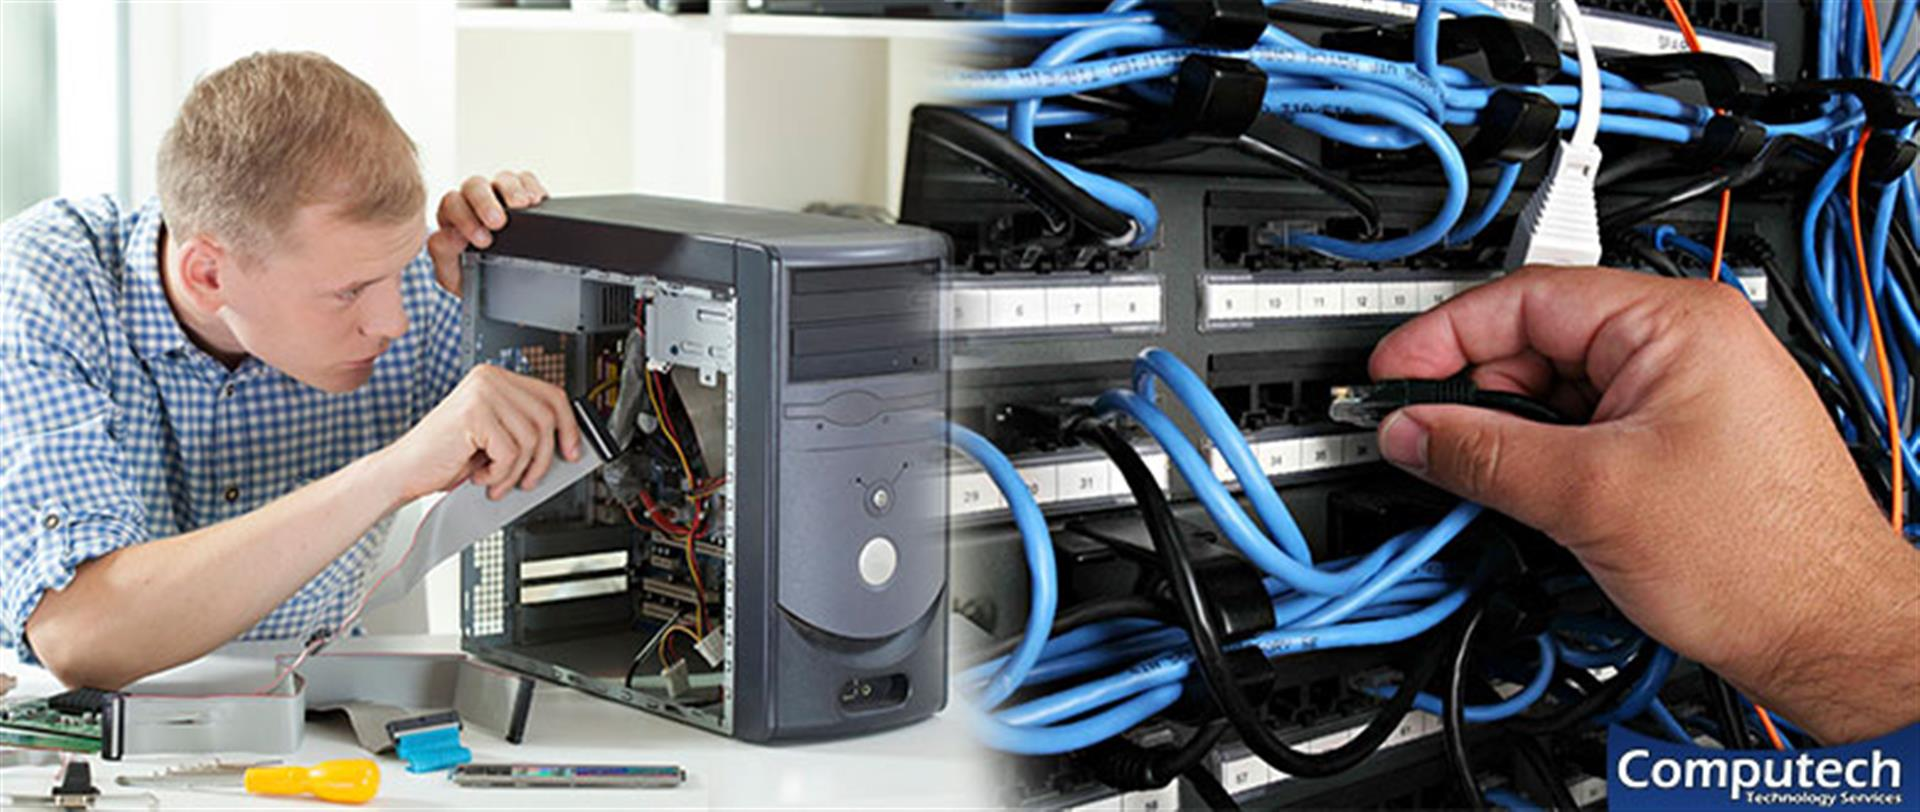 Guntersville Alabama On Site Computer & Printer Repair, Networking, Telecom & Data Low Voltage Cabling Services